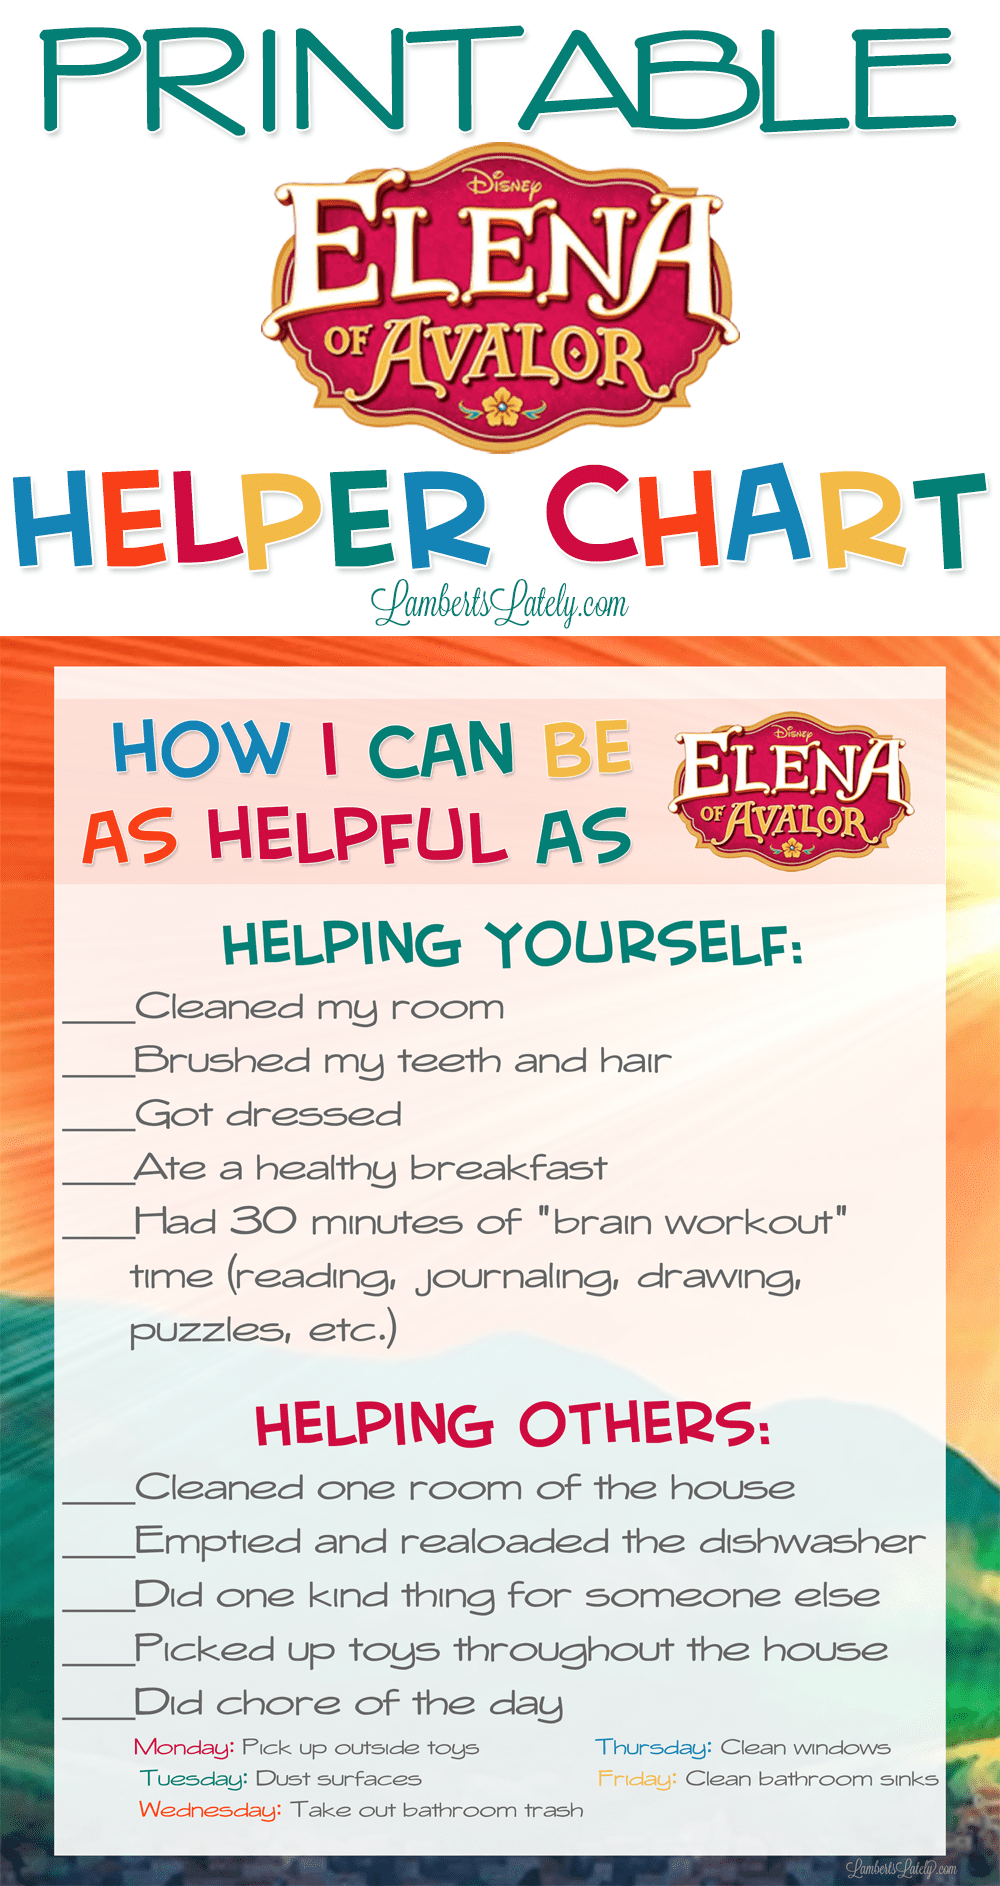 free printable chore chart for summer || Elena of Avalor Disney Junior printables || helper chart for kids || preschoolers